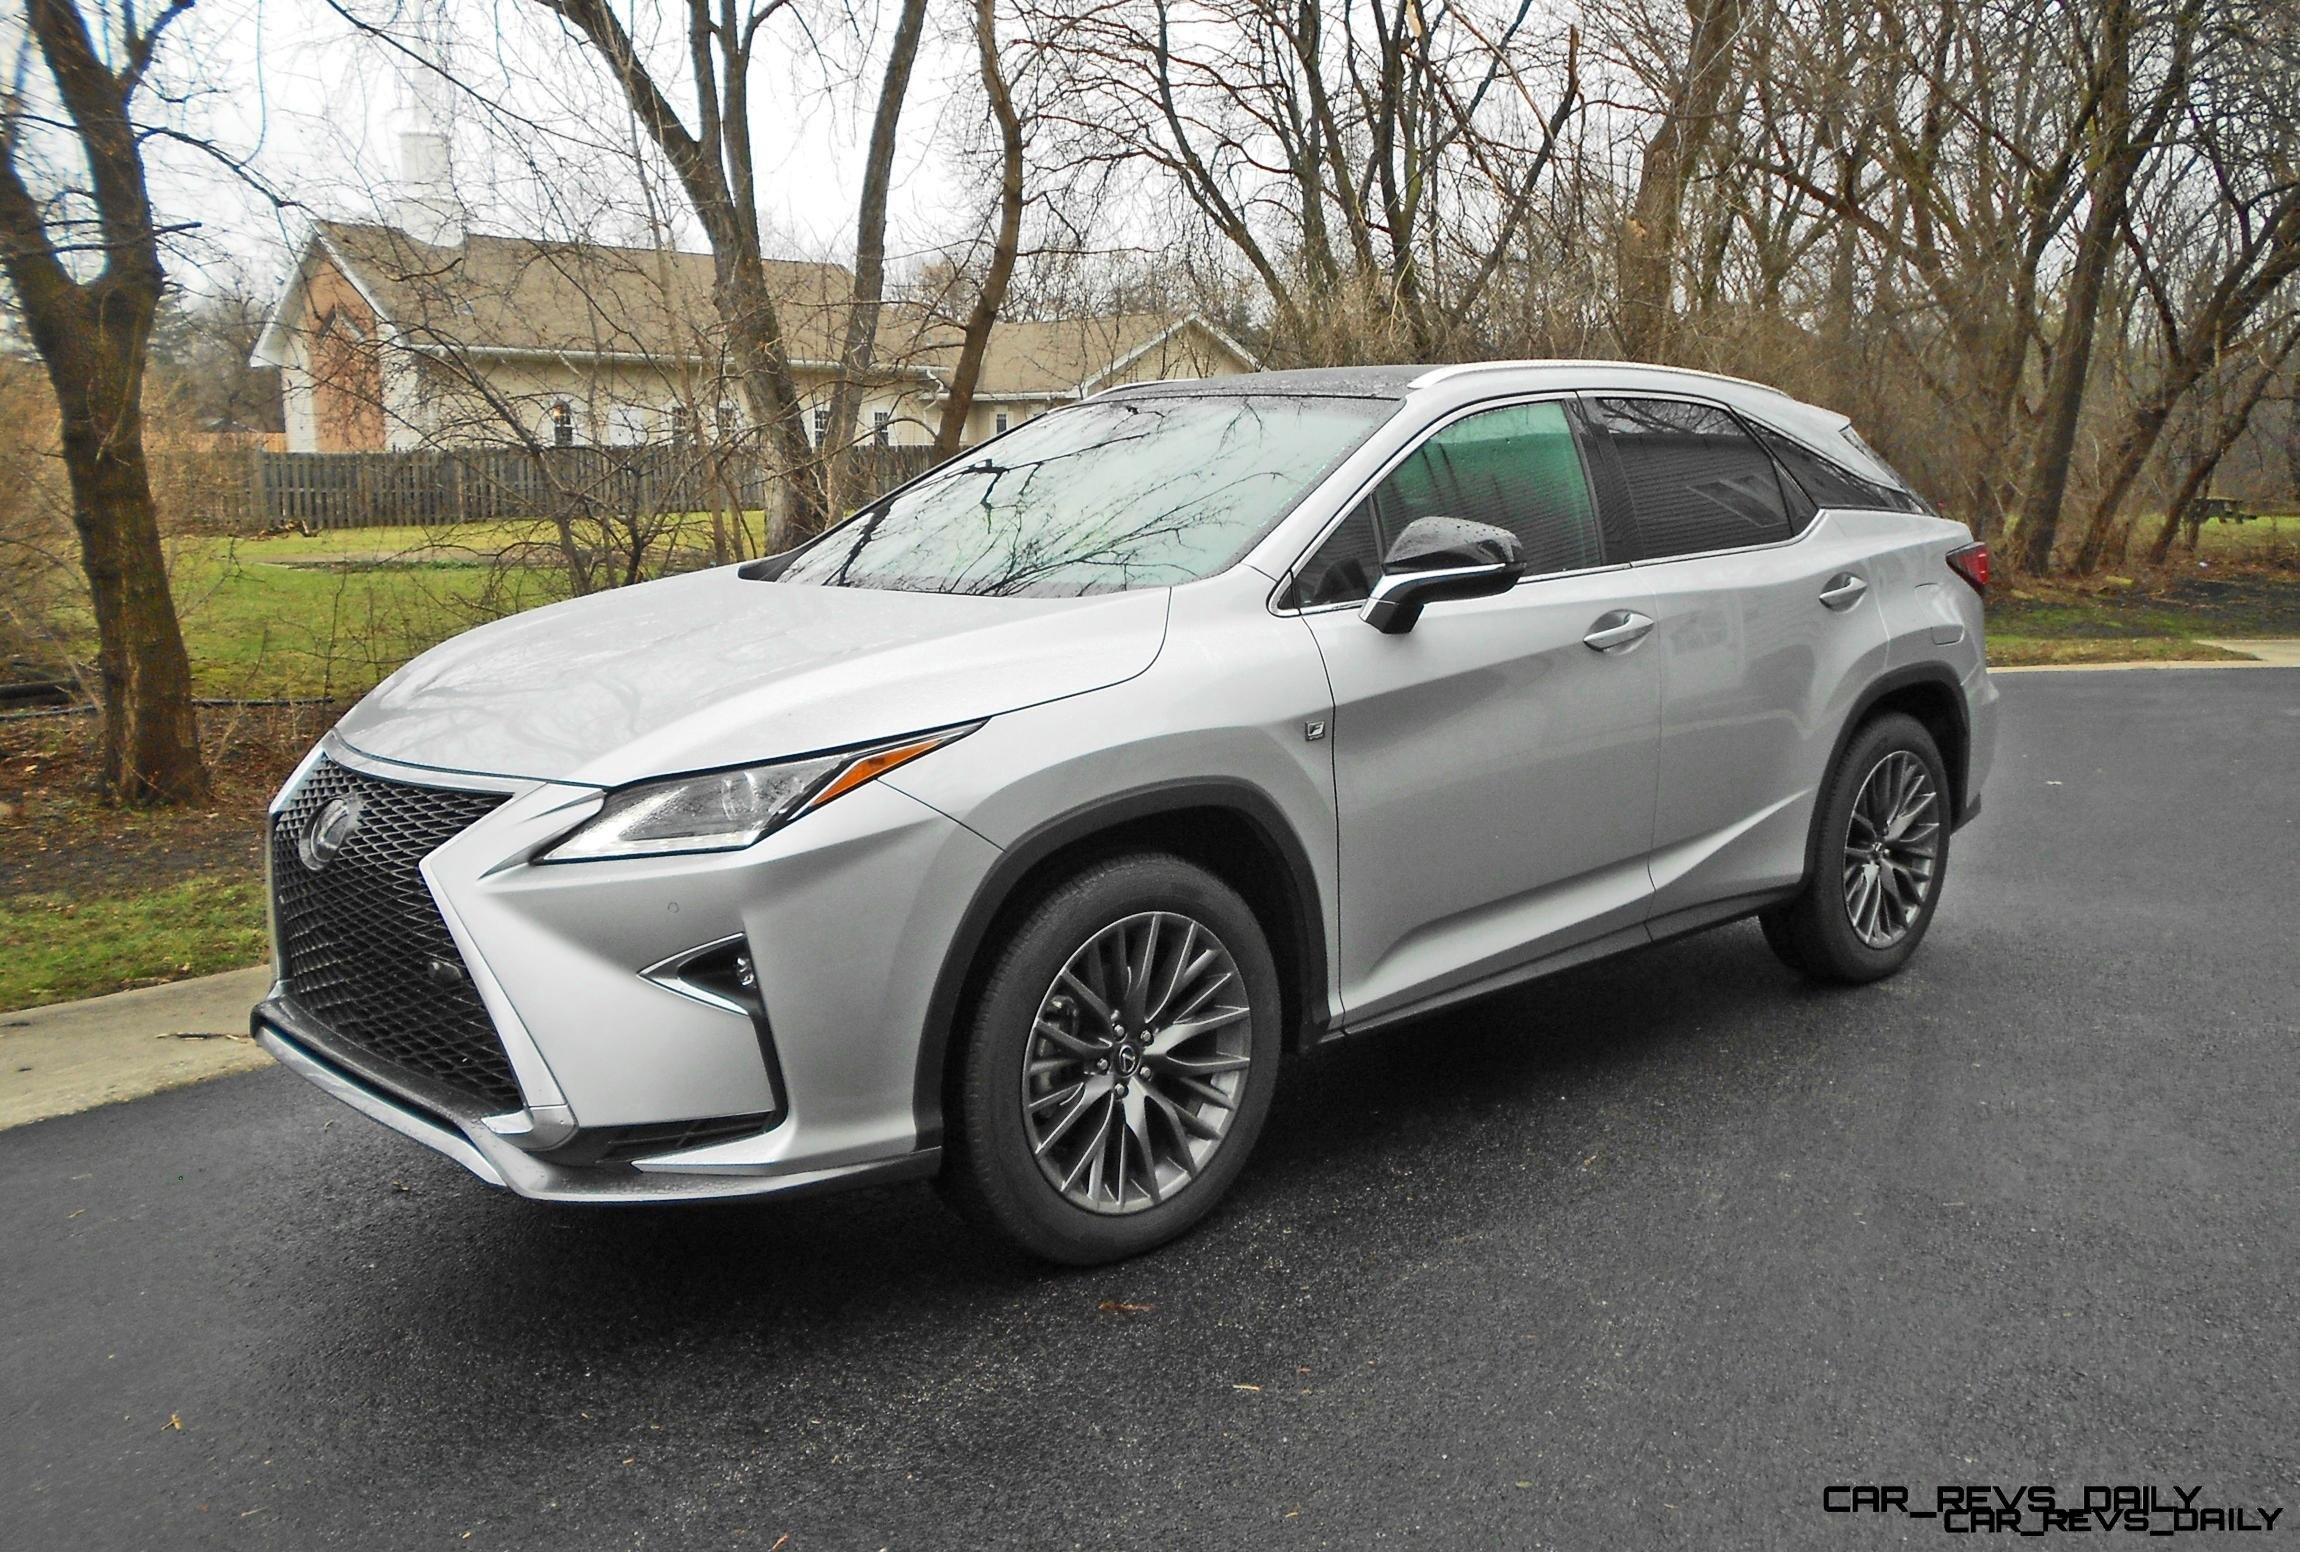 road test review 2016 lexus rx350 f sport awd. Black Bedroom Furniture Sets. Home Design Ideas